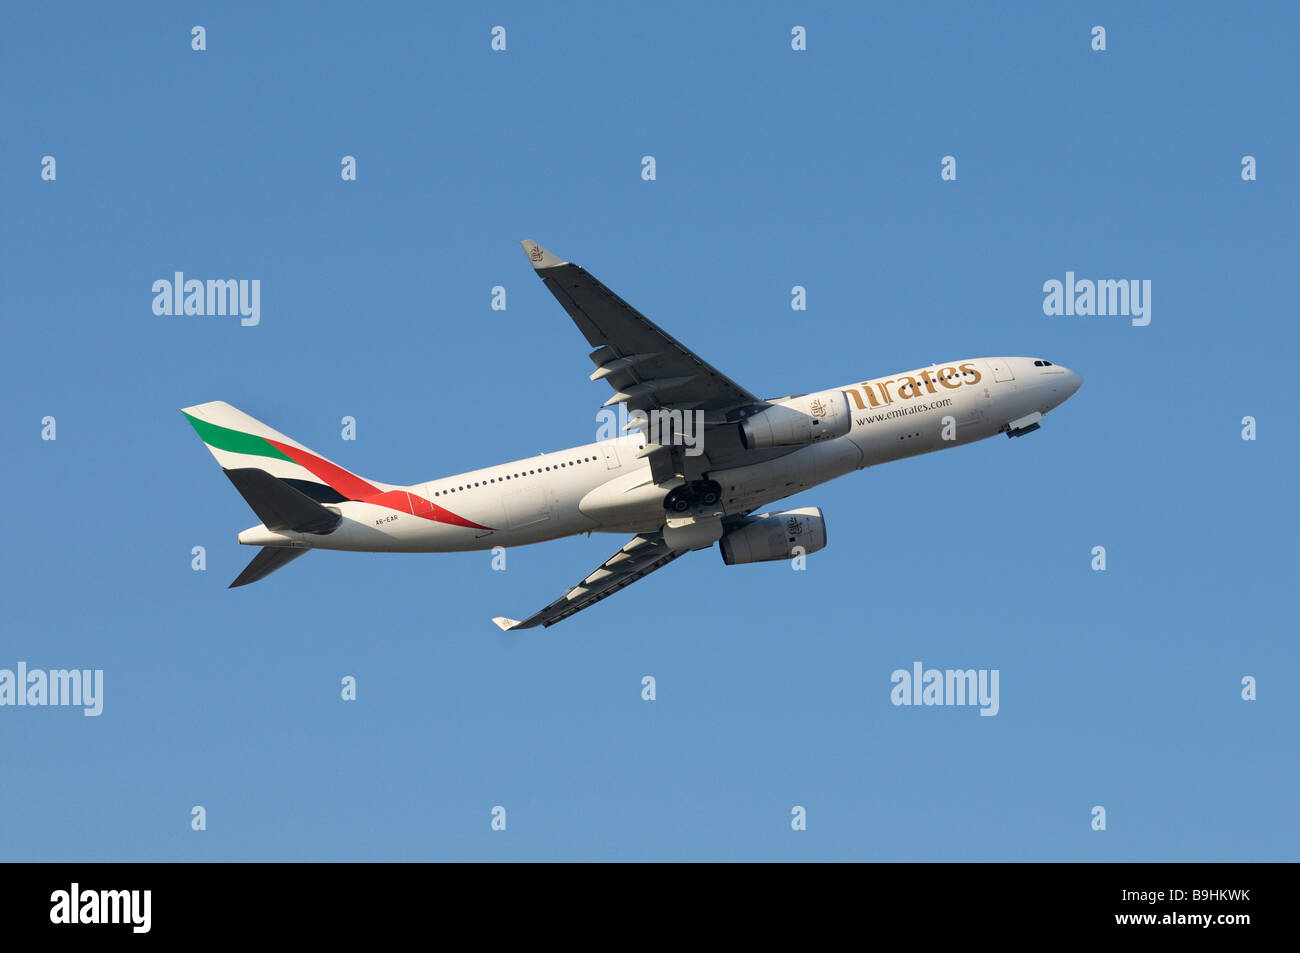 Emirates commercial aircraft Airbus A330-200 during climb flight - Stock Image